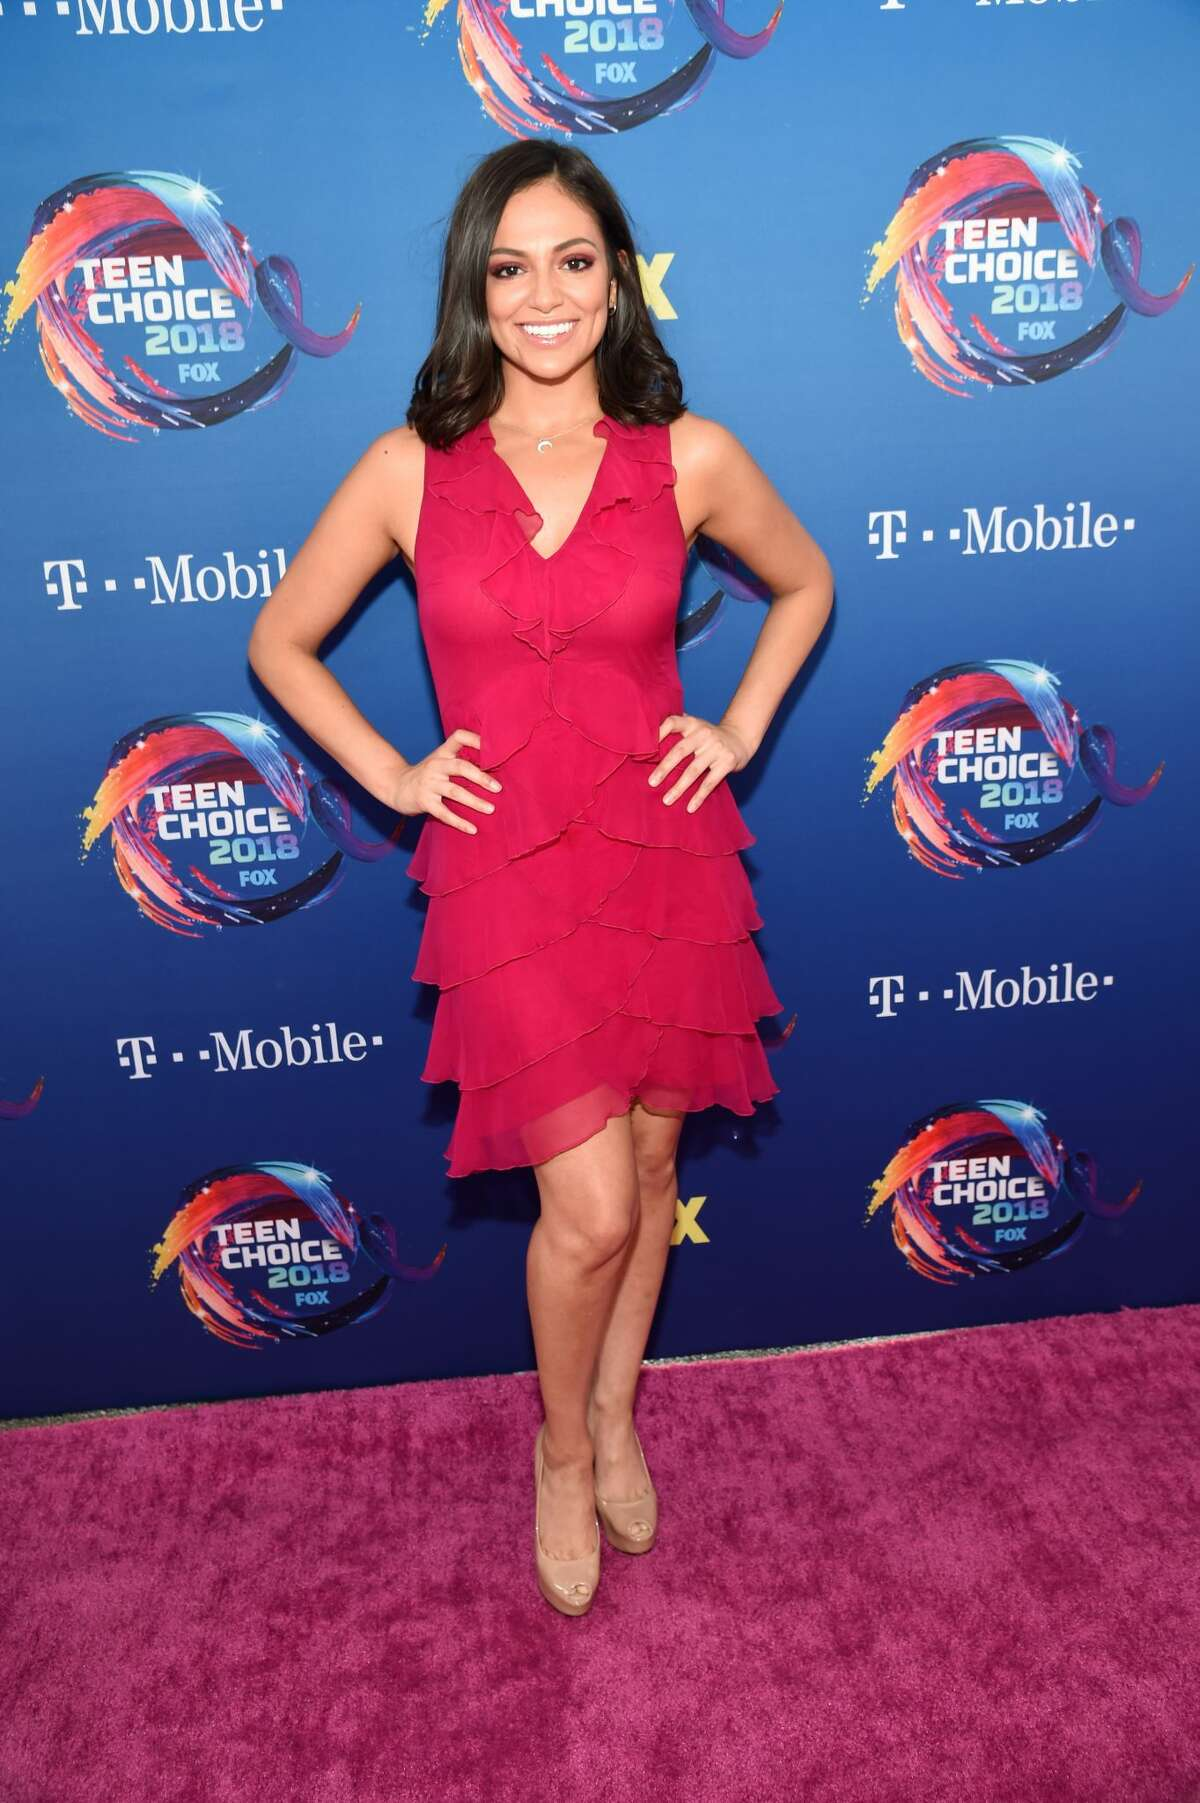 Bethany Mota attends FOX's Teen Choice Awards at The Forum on Aug. 12, 2018 in Inglewood, California. (Photo by Kevin Mazur/Getty Images)